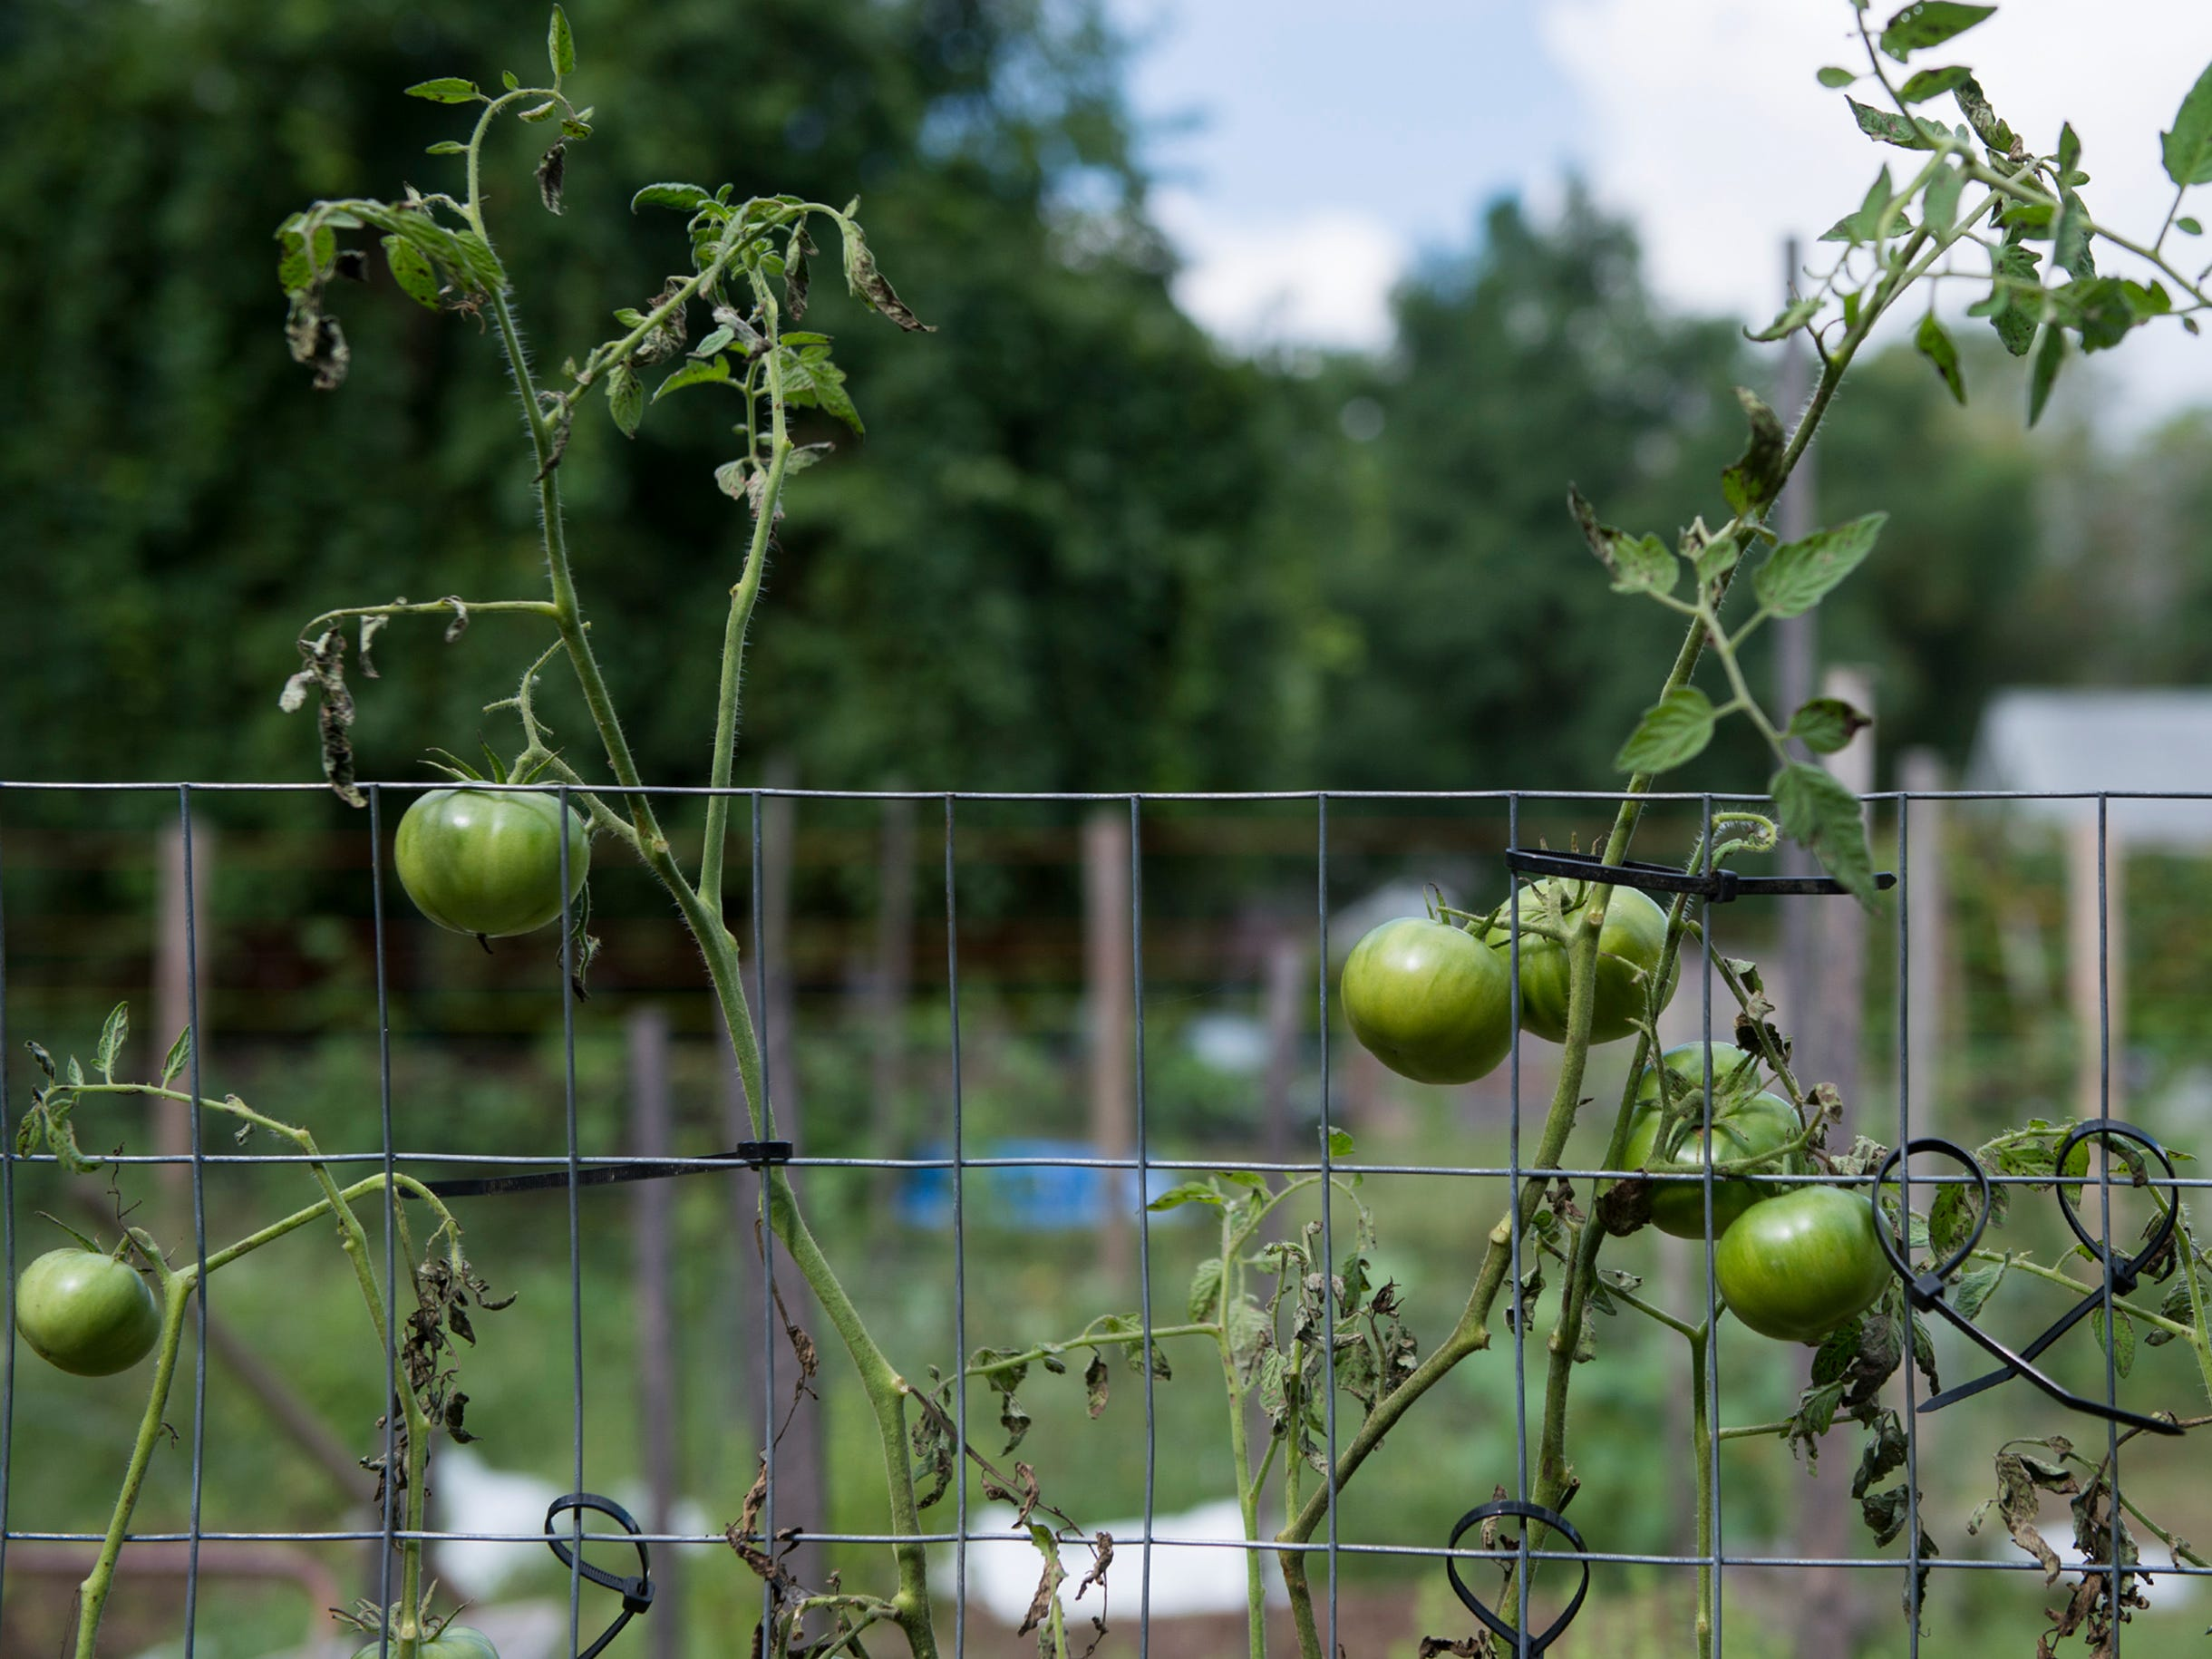 Tomatoes grow at Free Haven Farms Thursday, Aug. 23, 2018 in Lawnside, N.J.